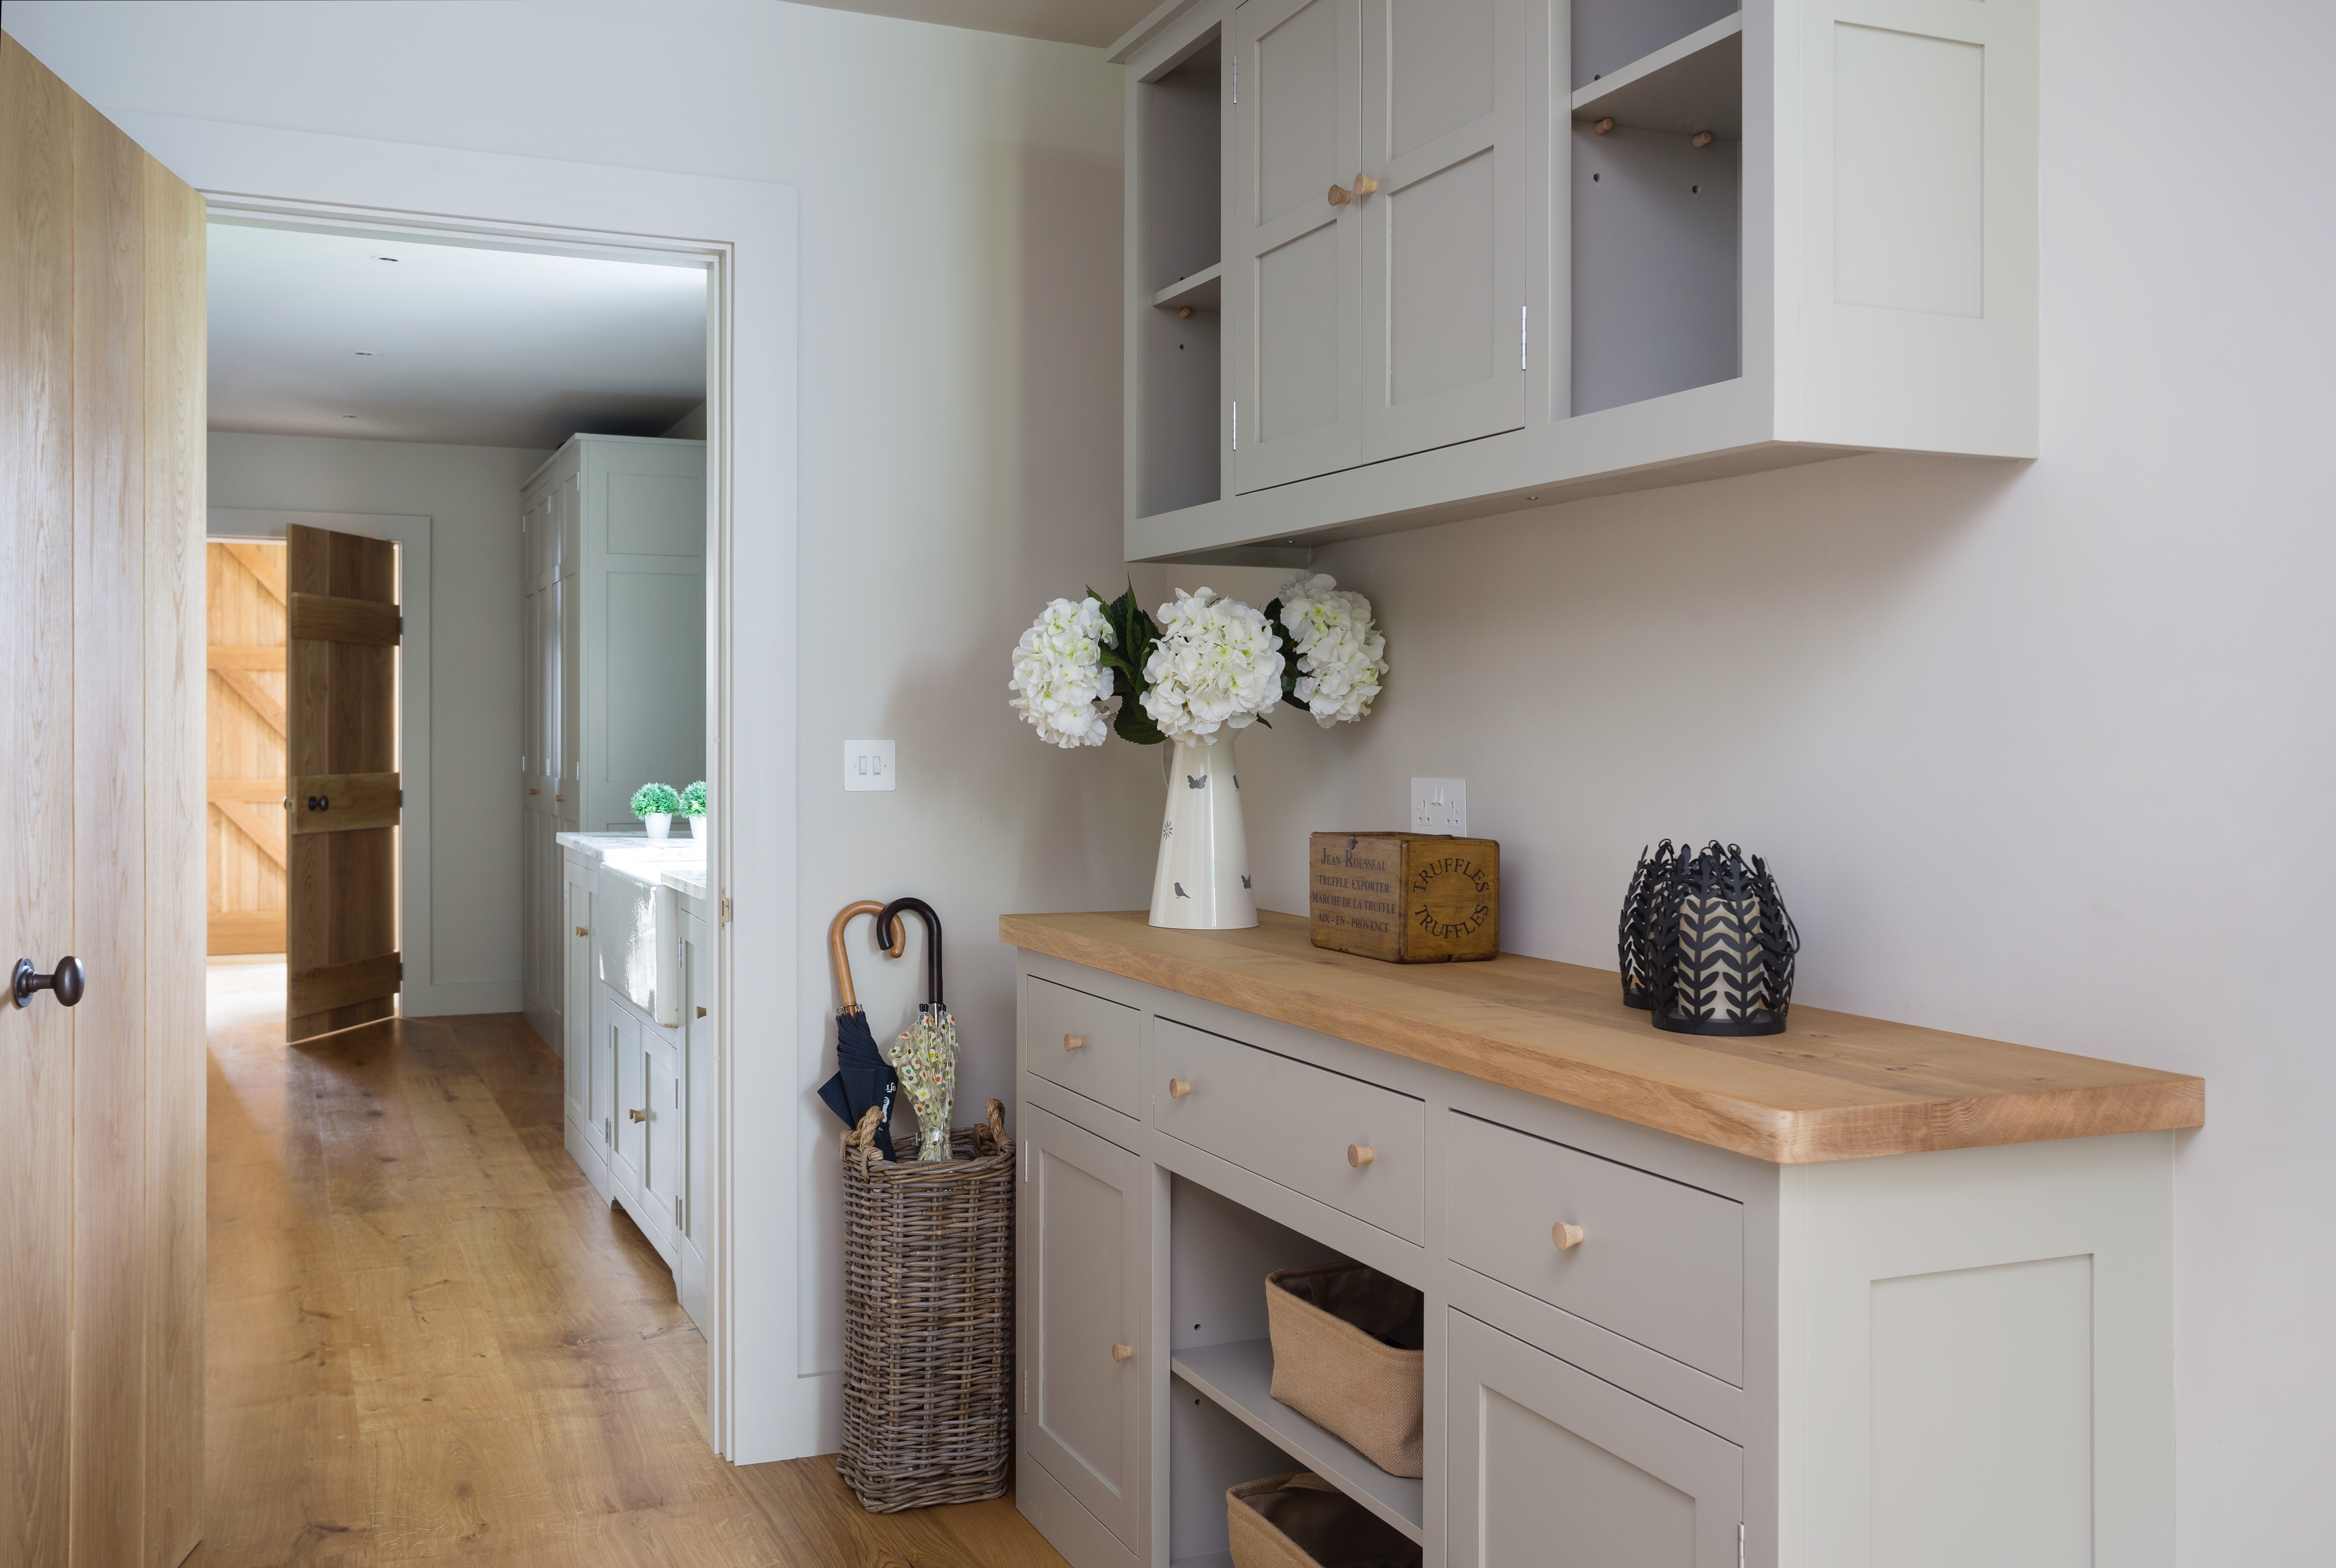 Bespoke shaker style boot room painted in Farrow & Ball Hardwick with oak worktops and handles leading into the utility room.